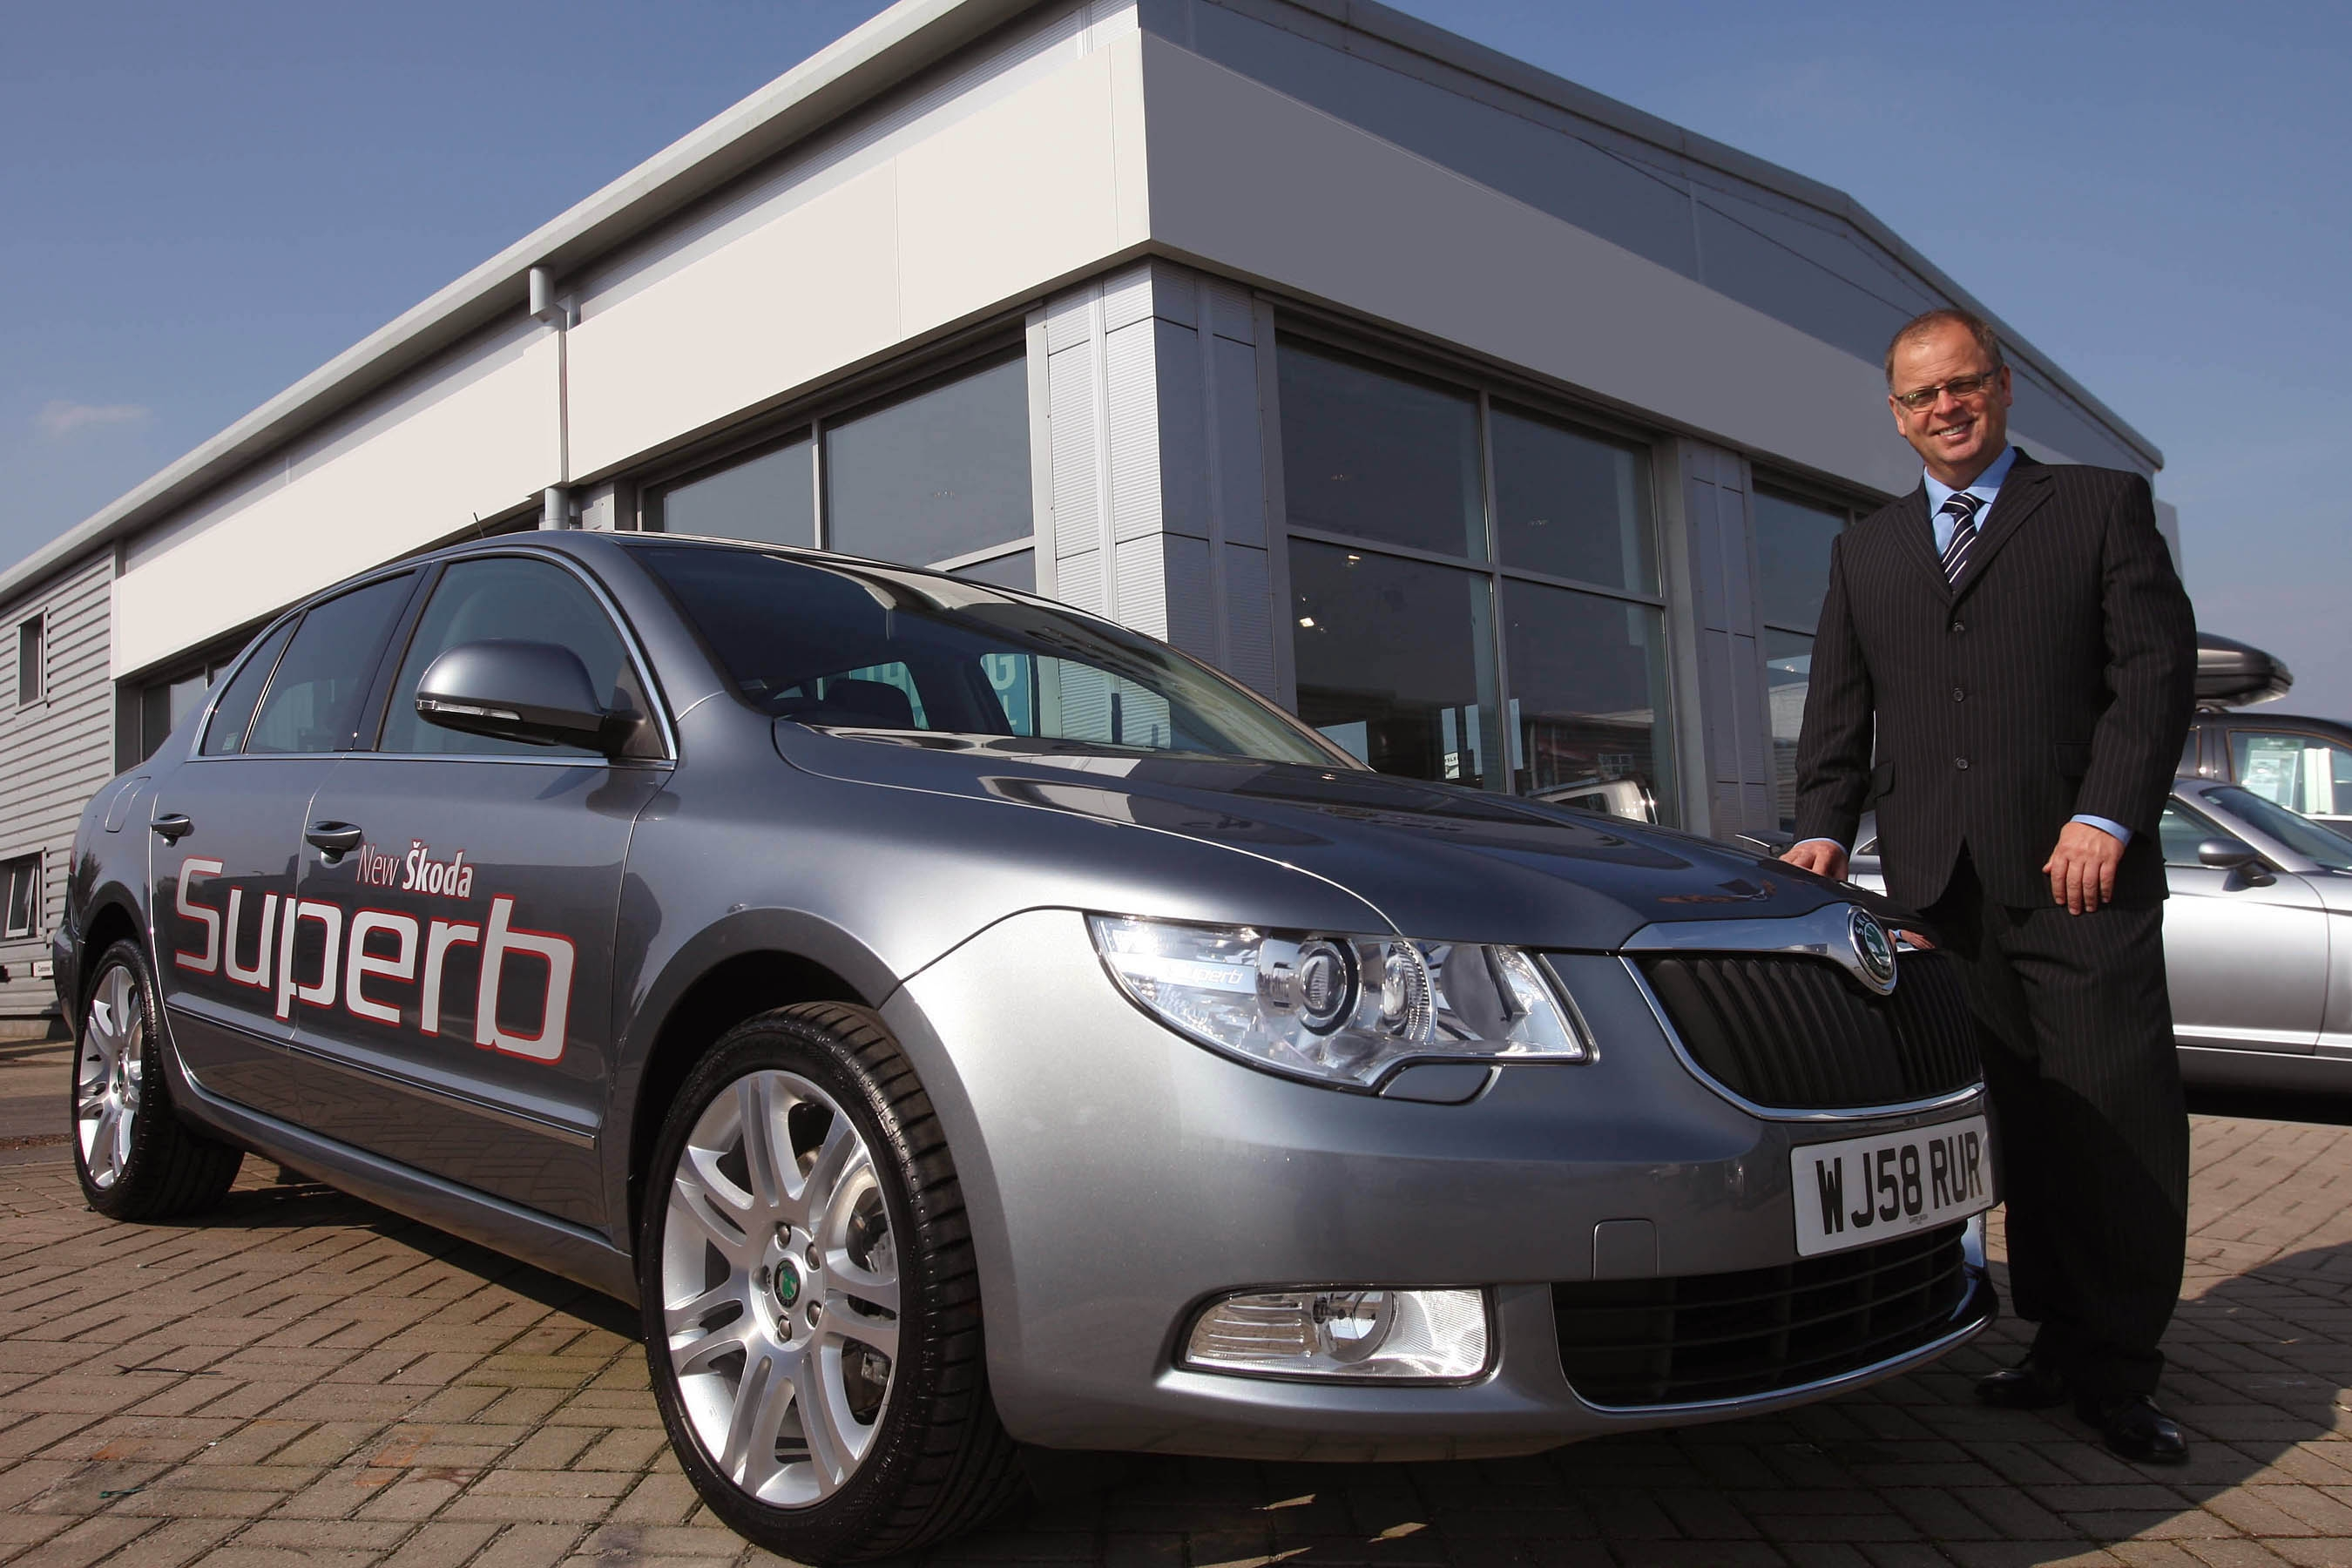 paul ridgwell general manager with one of the new skoda cars now on sale